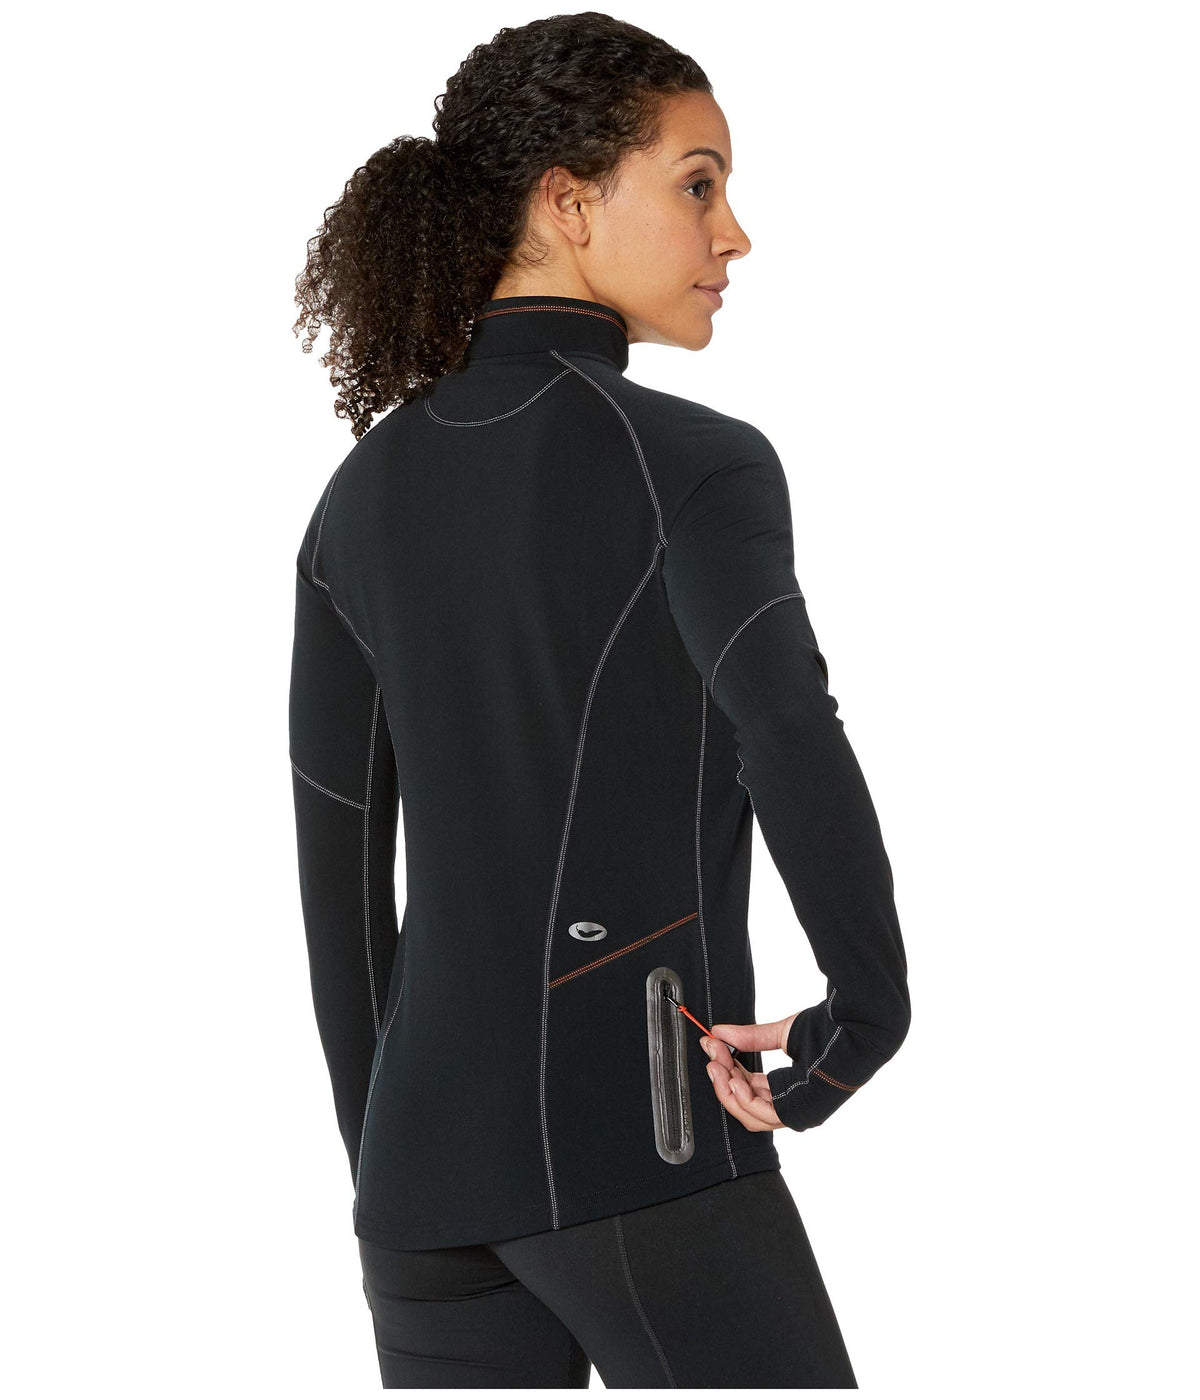 Micro Elite XT Pocket Zip-T